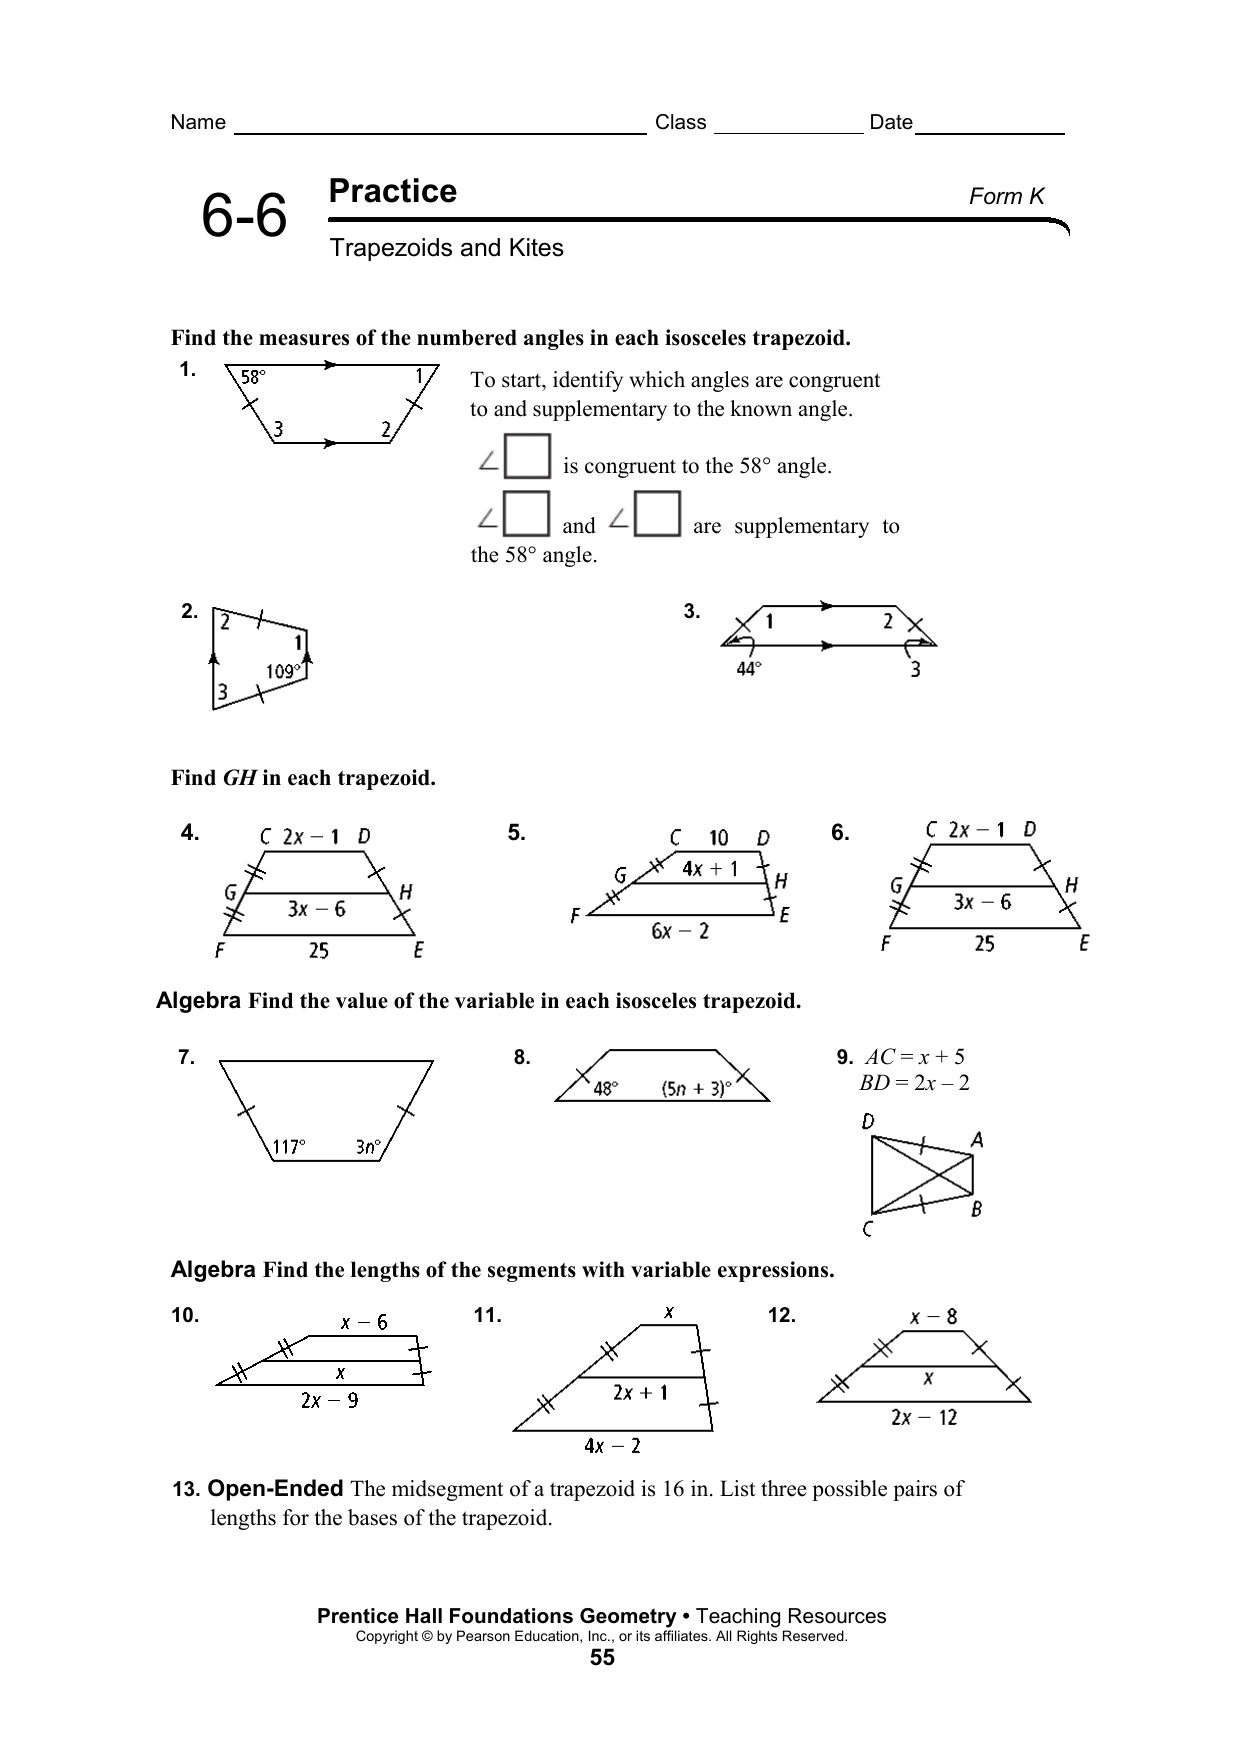 Kites And T Zoids Worksheet Answers